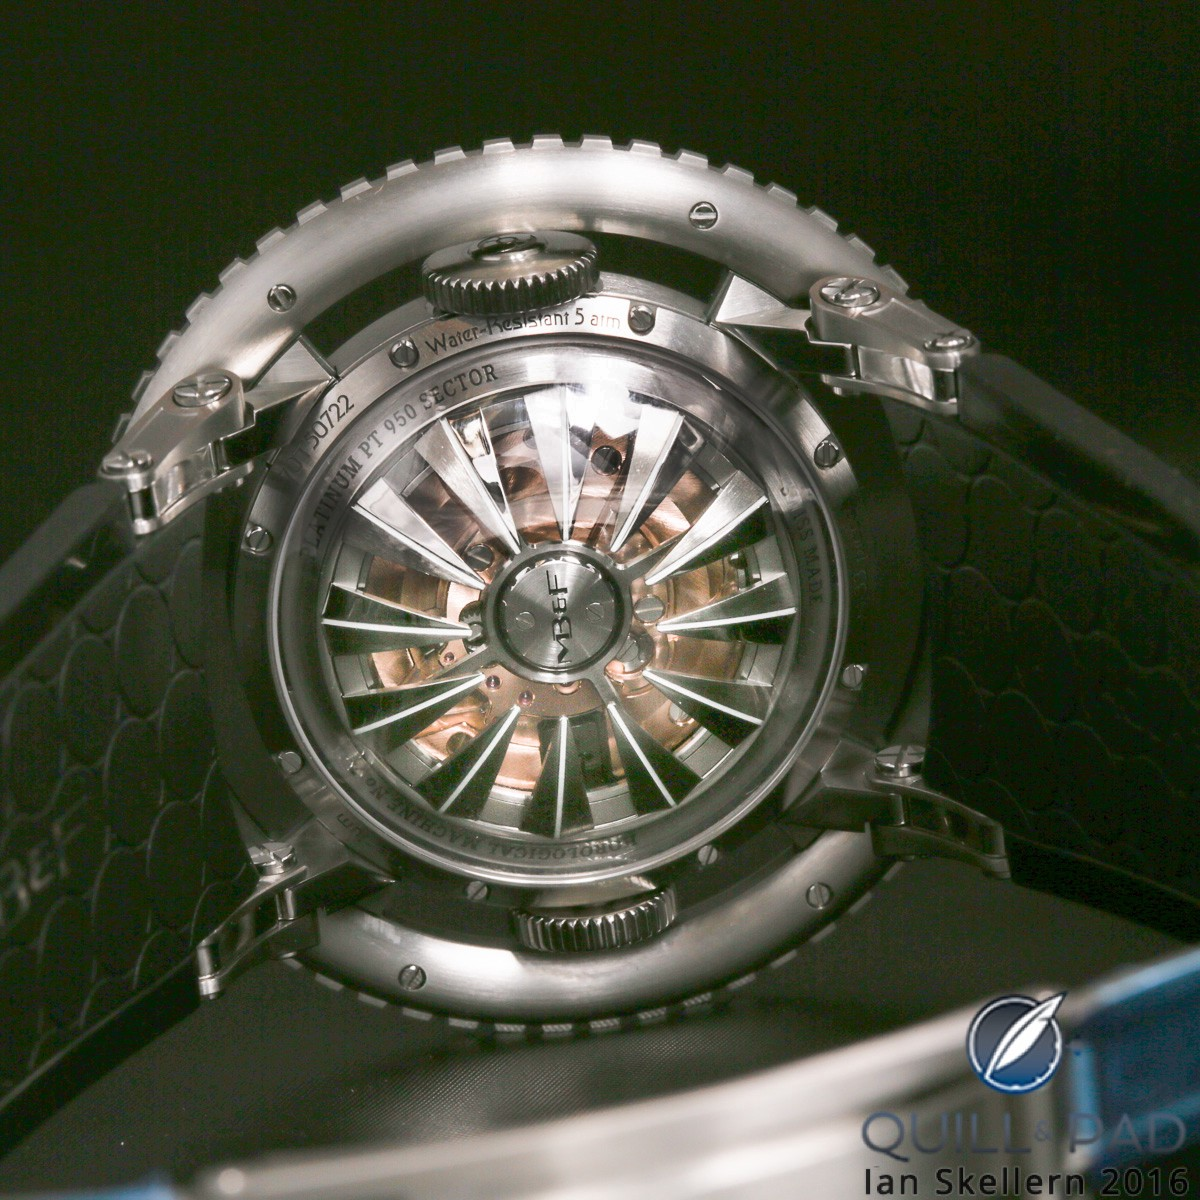 View though the domed display back of the MB&F HM7 Aquapod to the jellyfish-tentacle-like automatic winding rotor